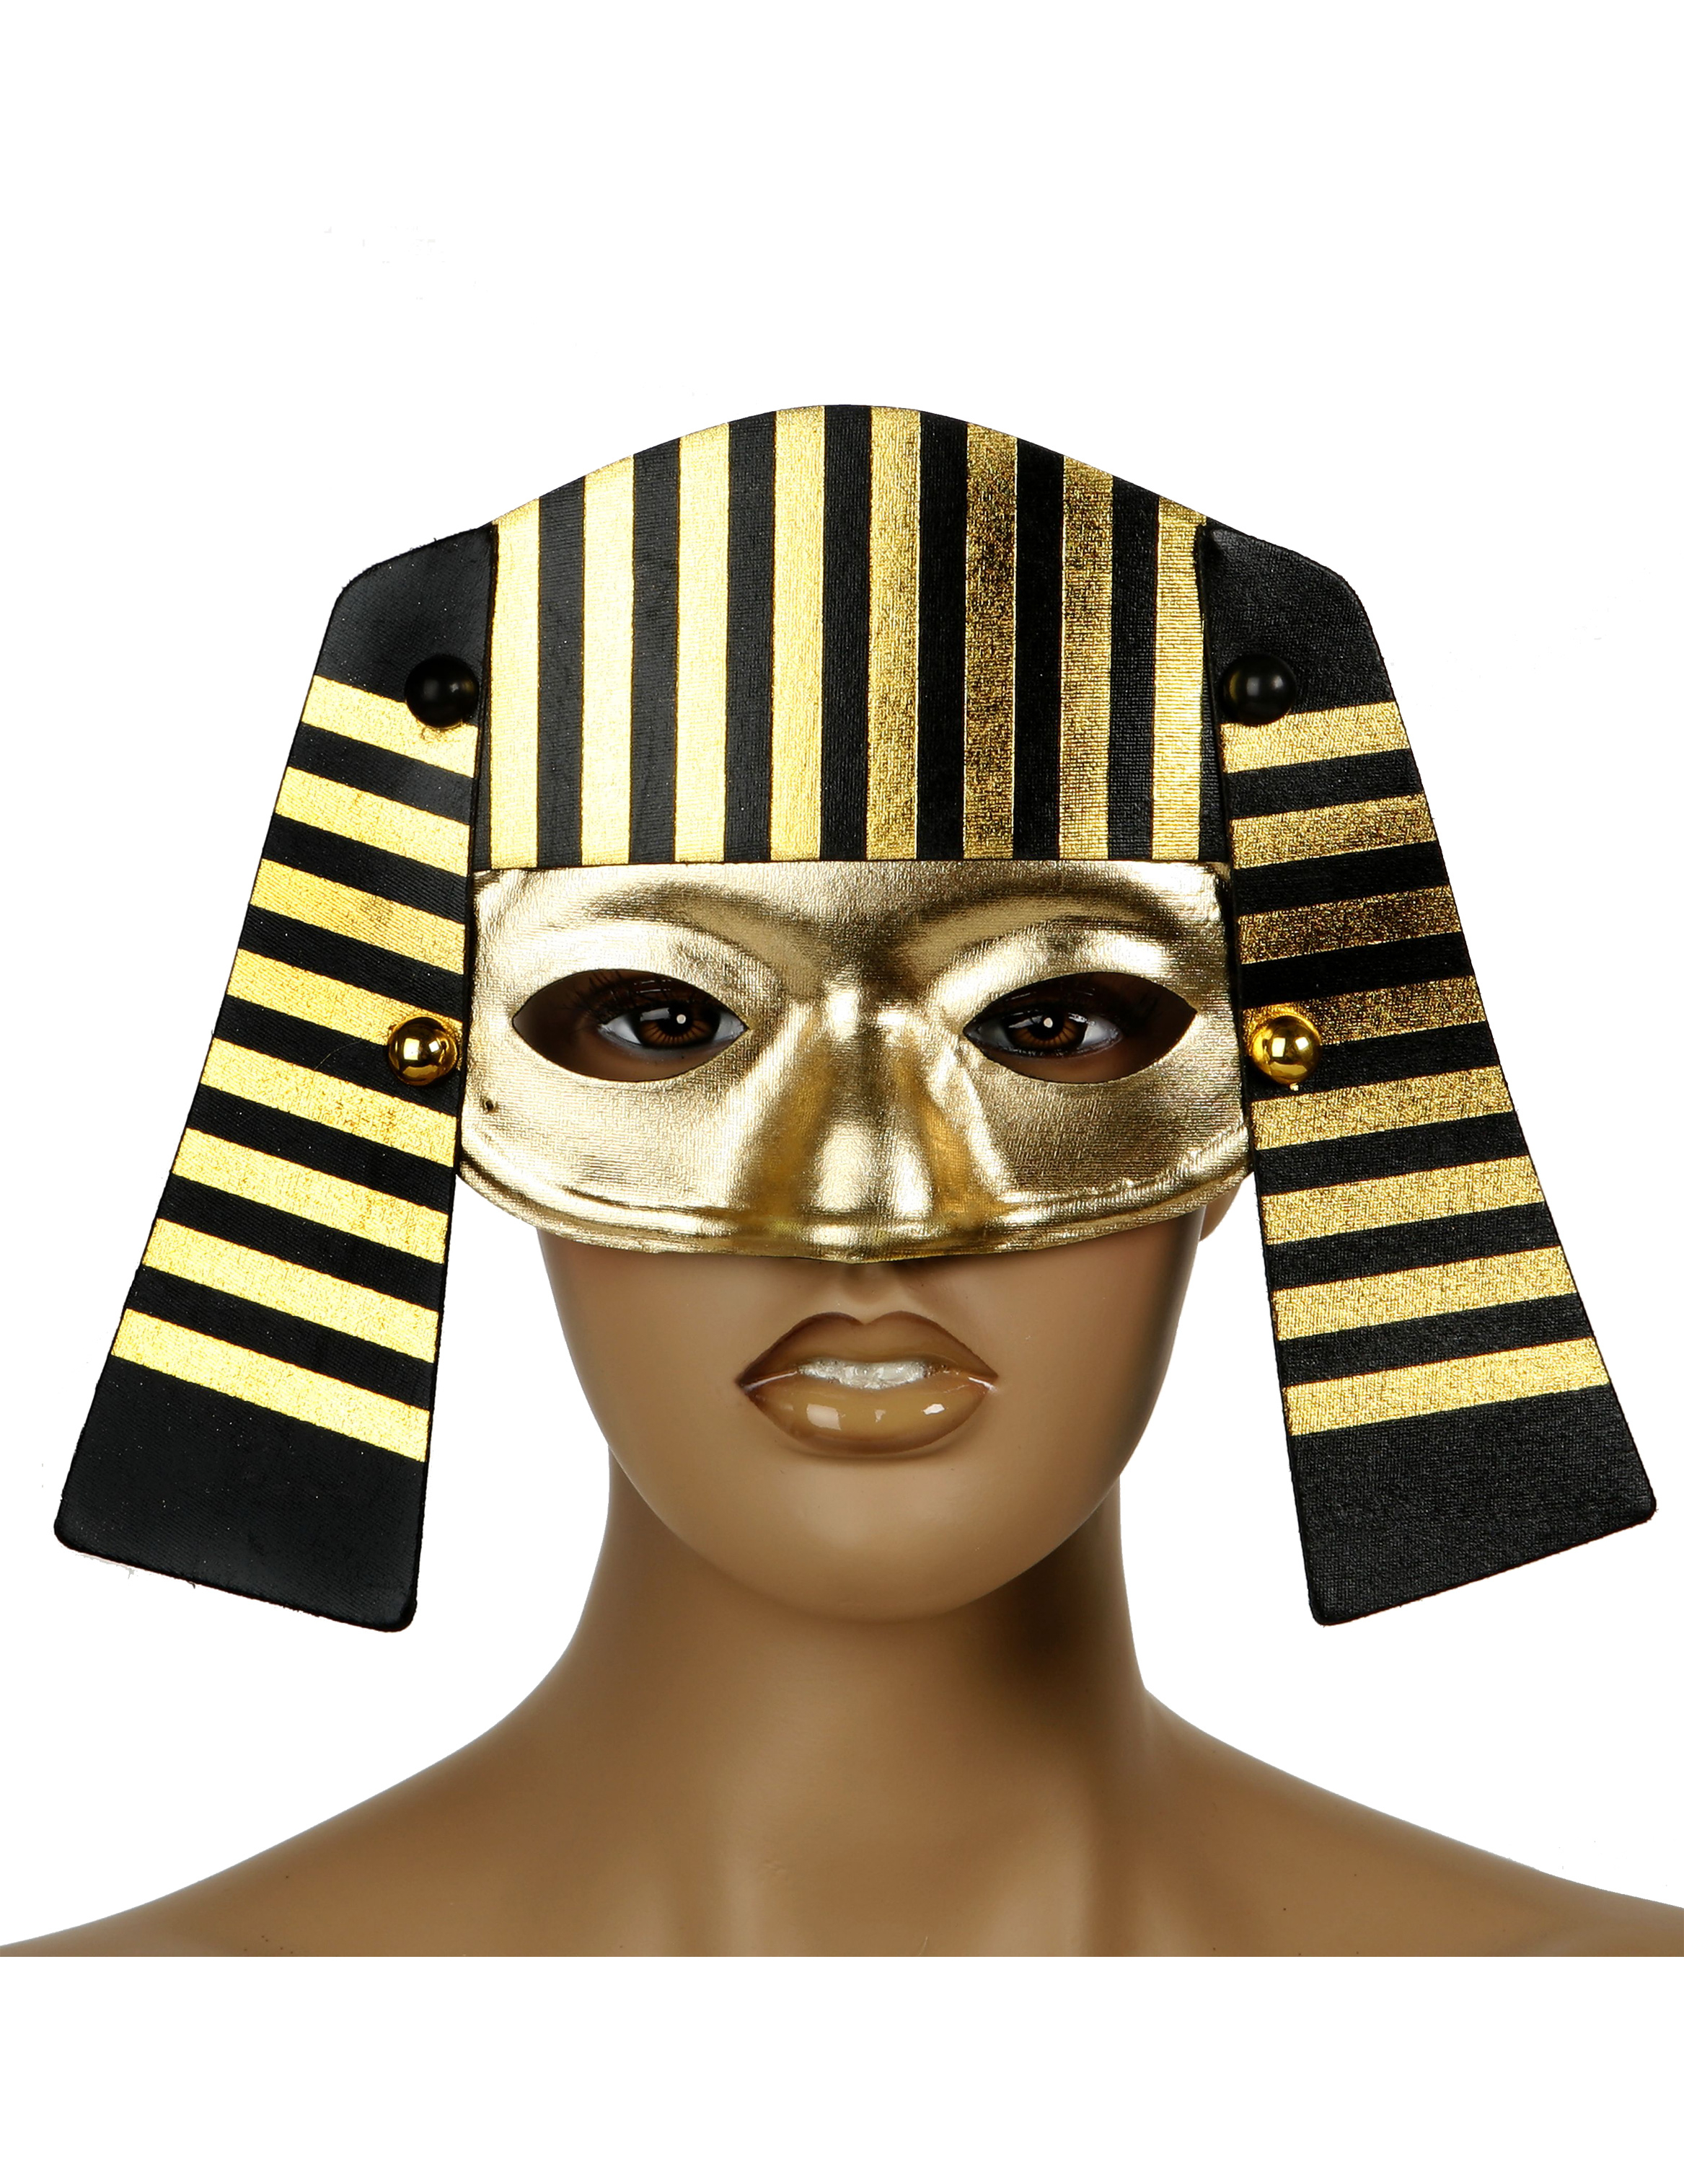 Egyptian eye mask for adults : Masks, and fancy dress costumes